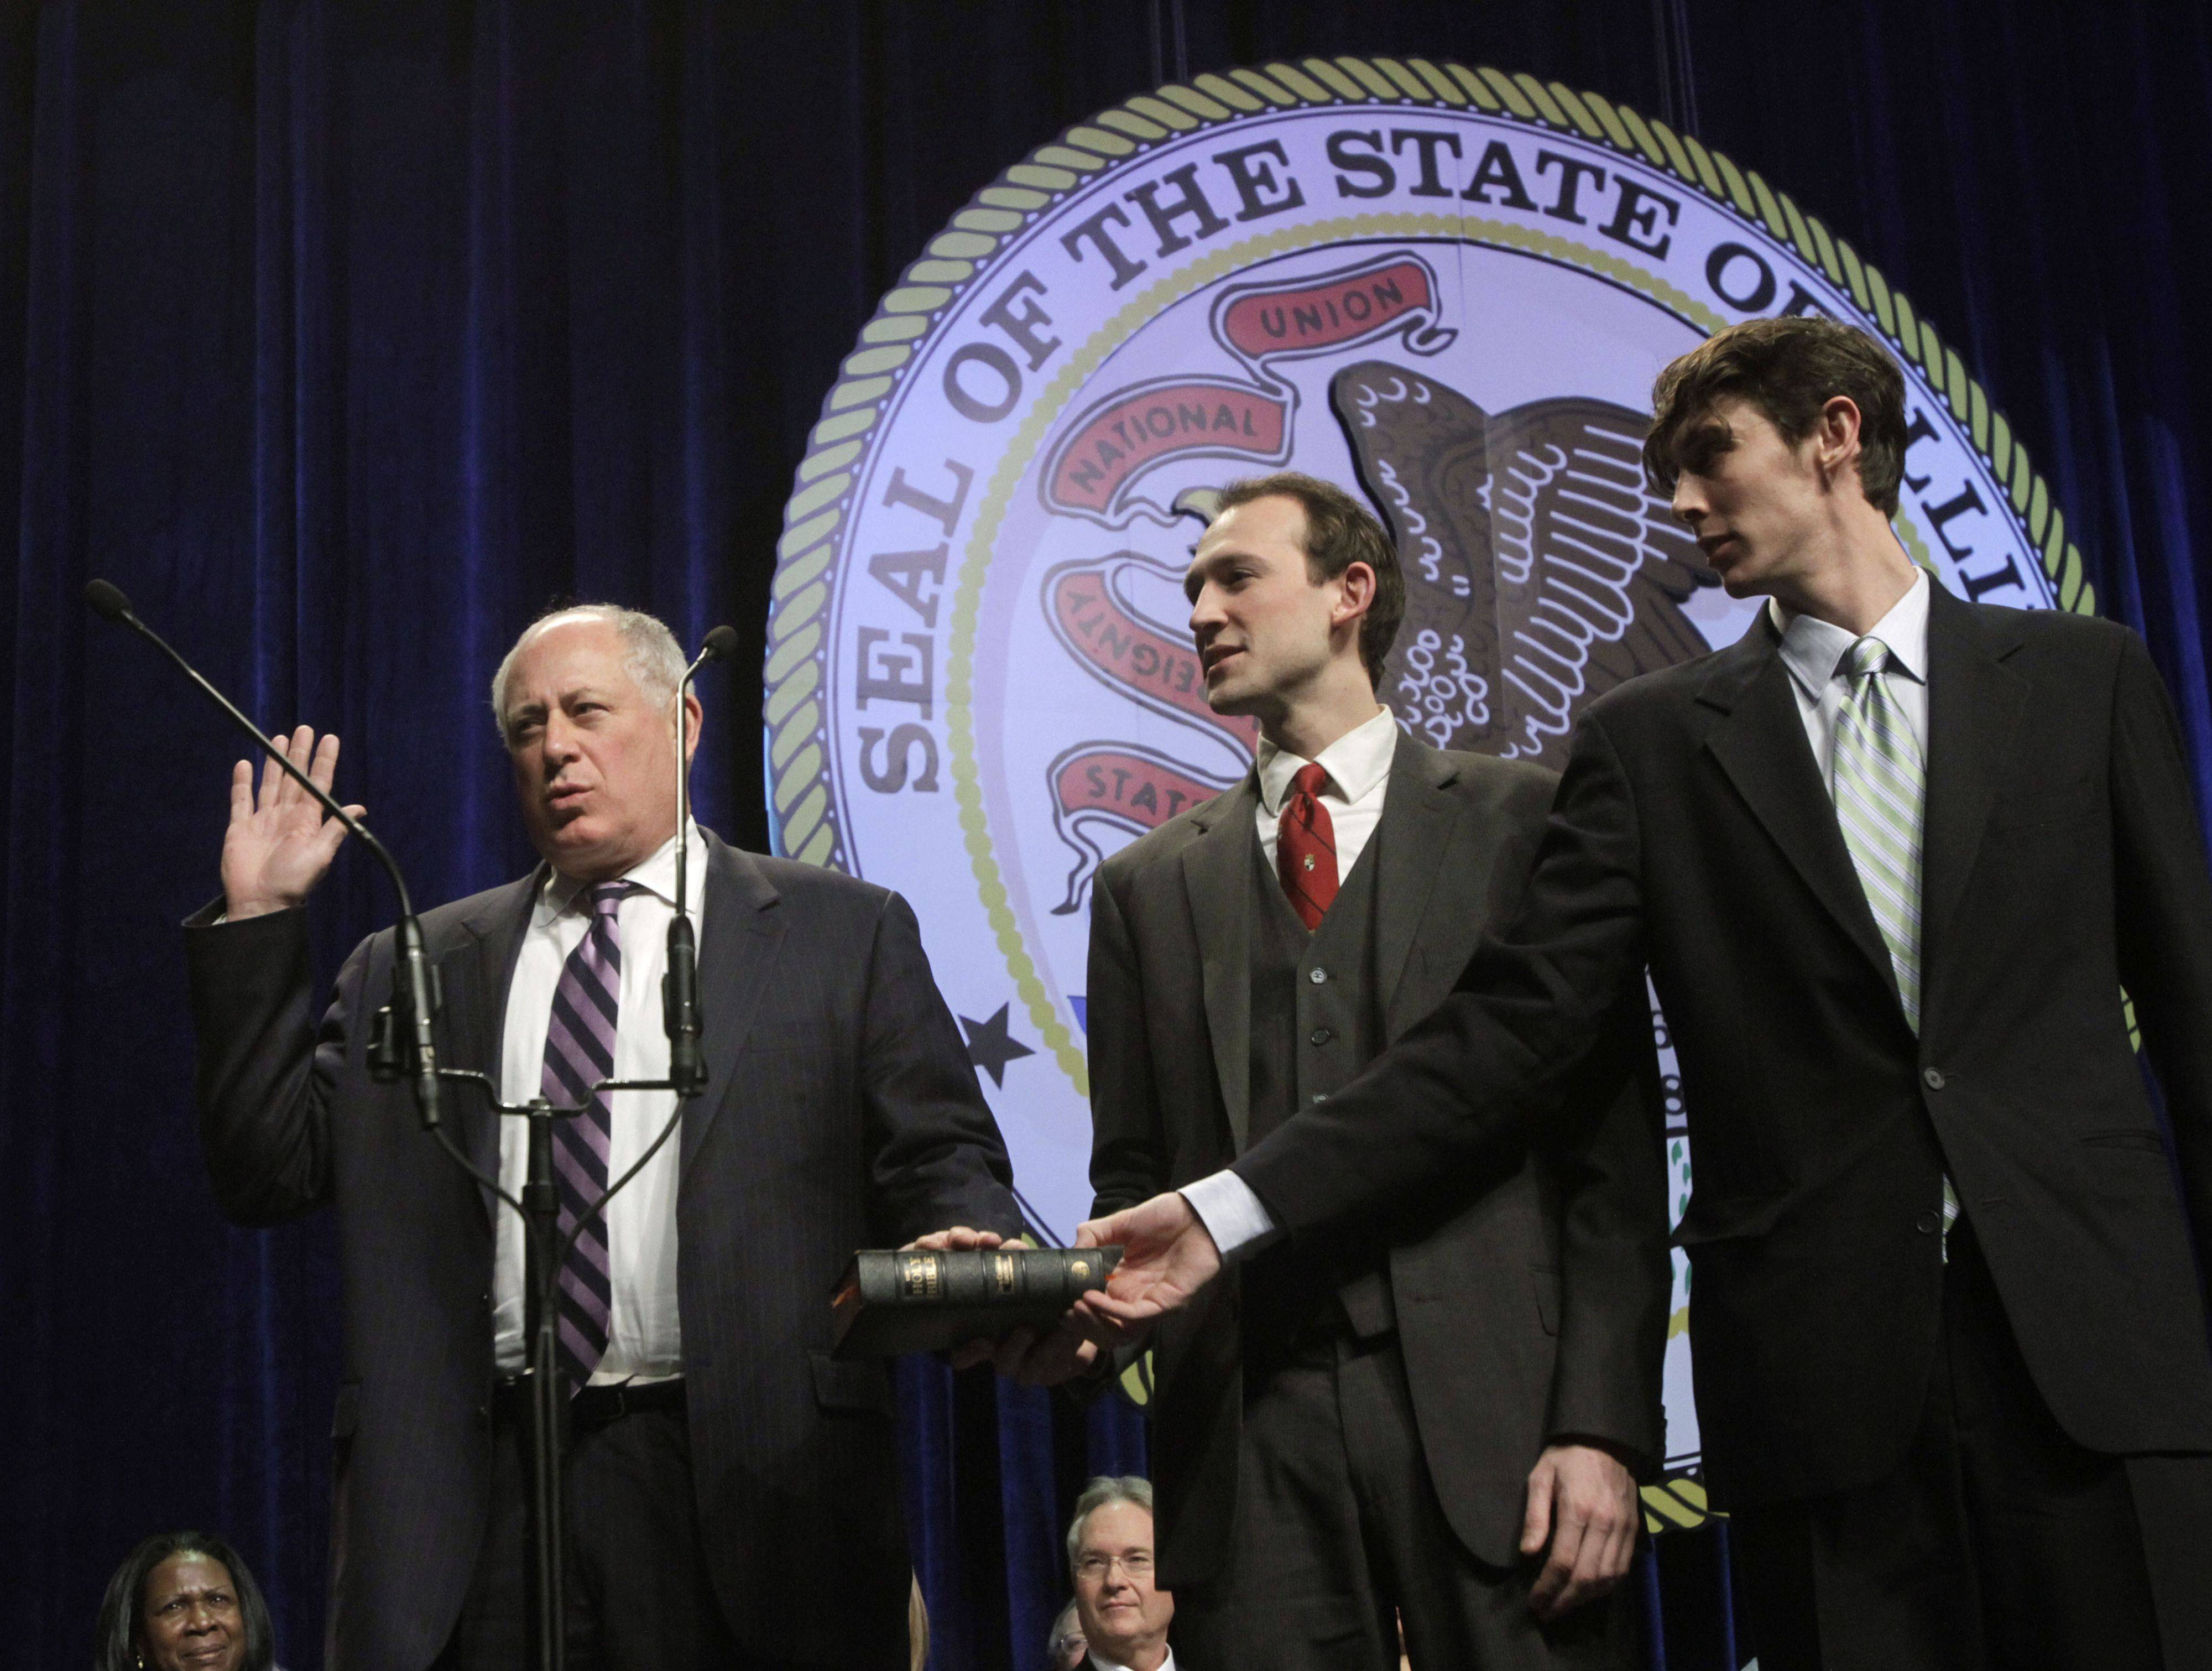 Illinois Gov. Pat Quinn, center, takes the oath of office of governor, from Illinois Supreme Court Justice Anne M. Burke, as Quinn's sons Patrick and David watch during inaugural ceremonies Monday, Jan. 10, 2011 in Chicago.